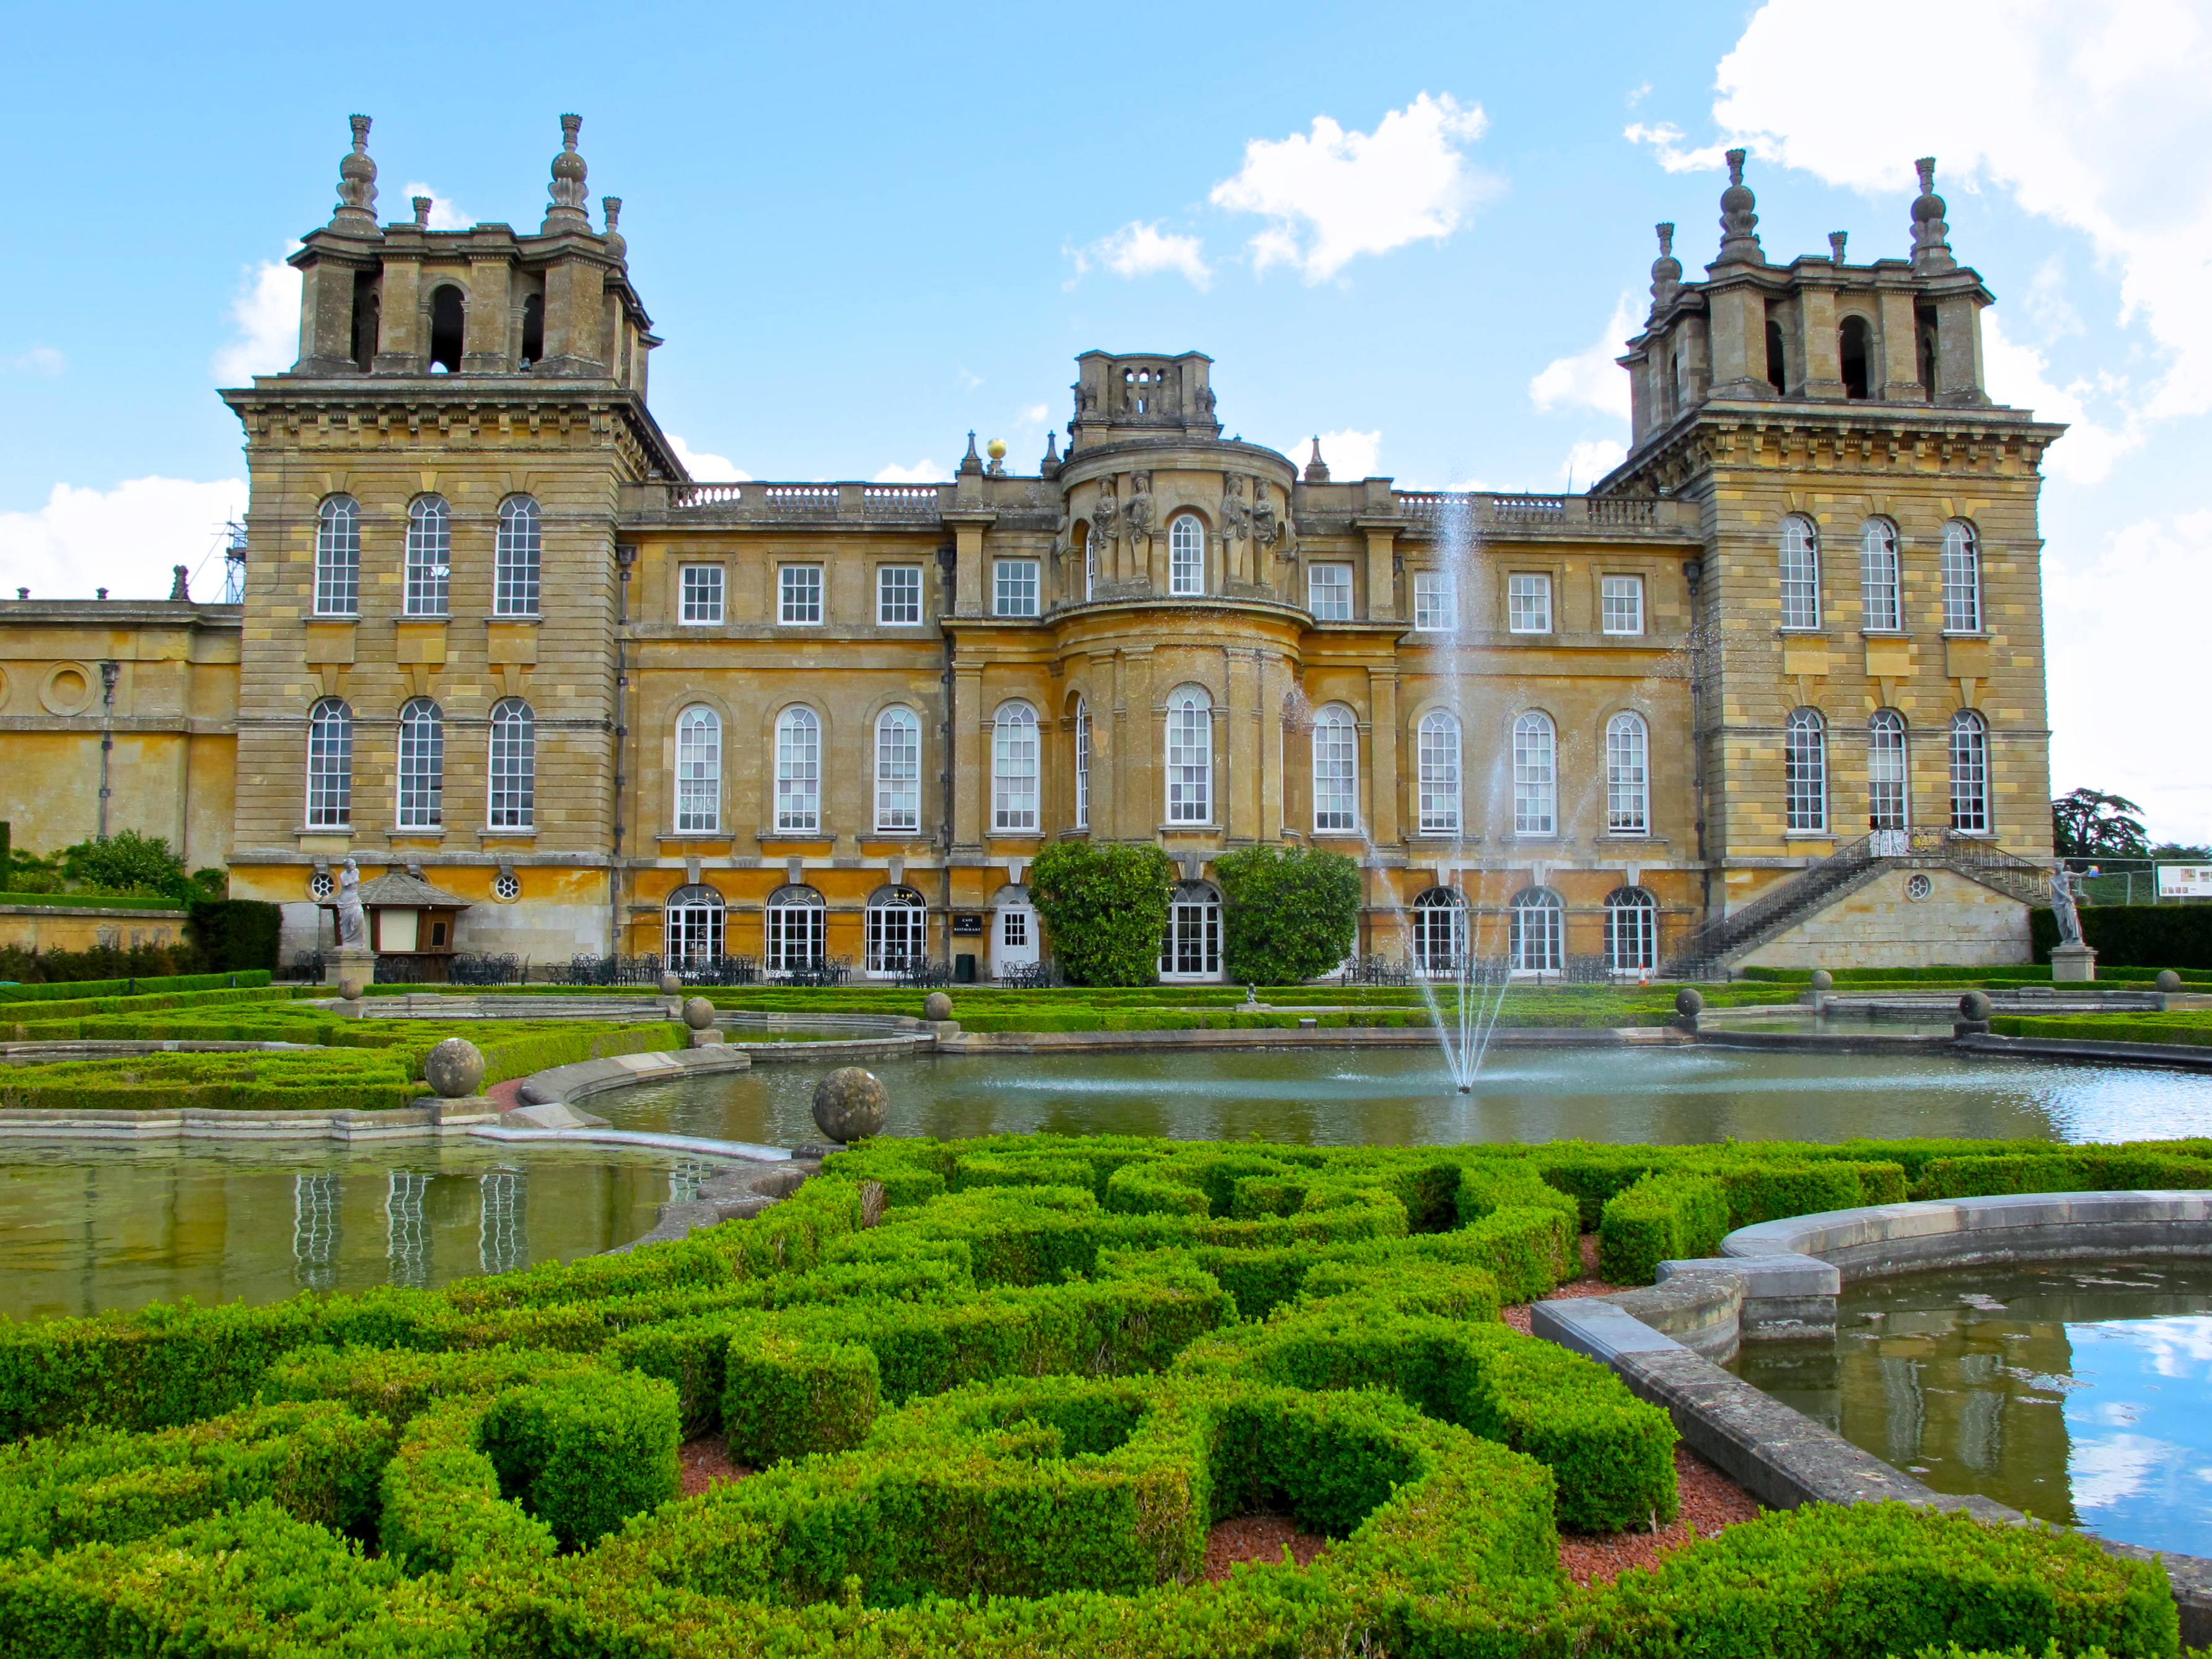 Blenheim palace most famous winston churchill quotes for English baroque architecture